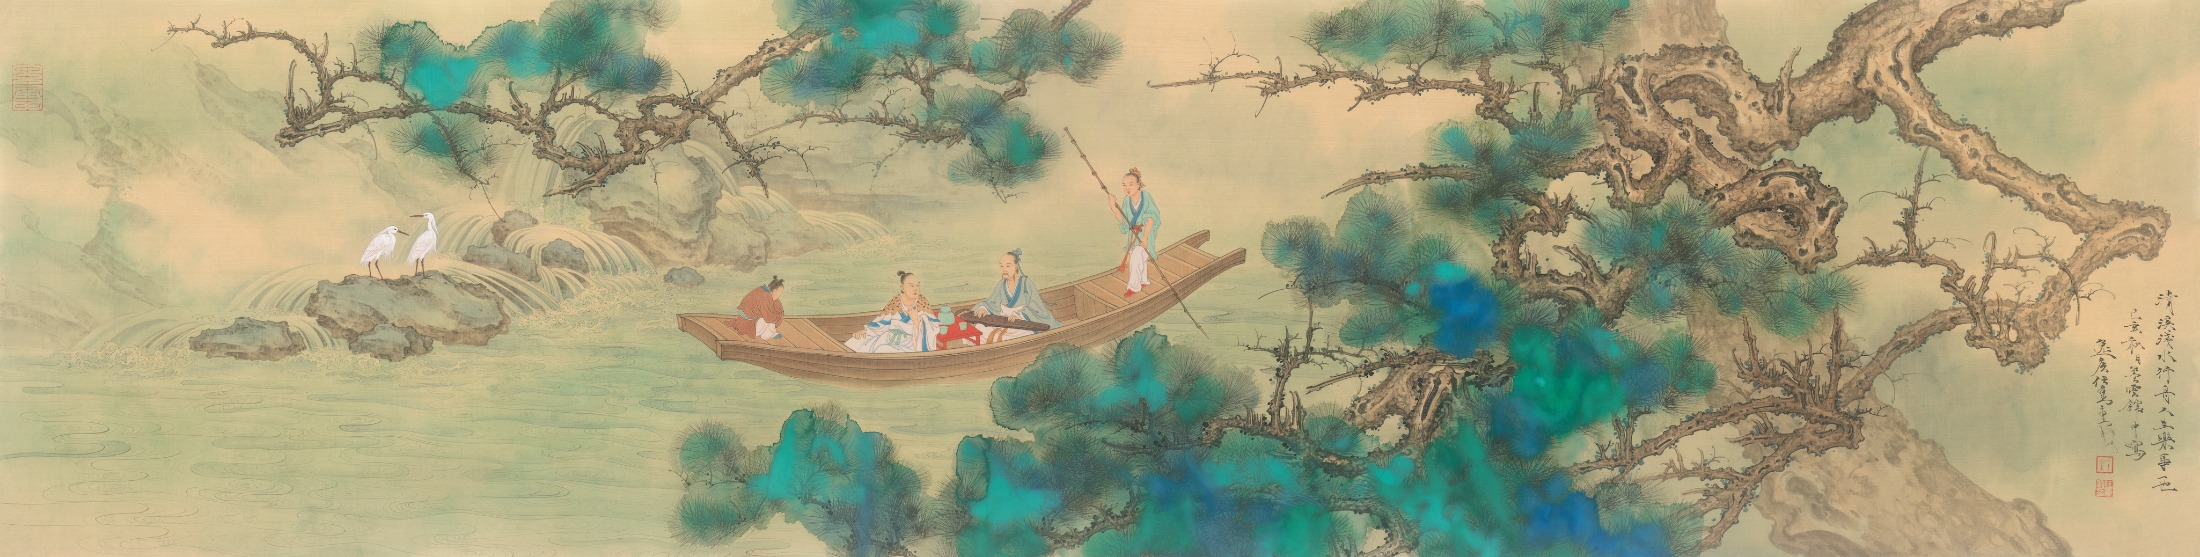 """Boating in a Limpid Stream."" Painting by Ren Zhong"